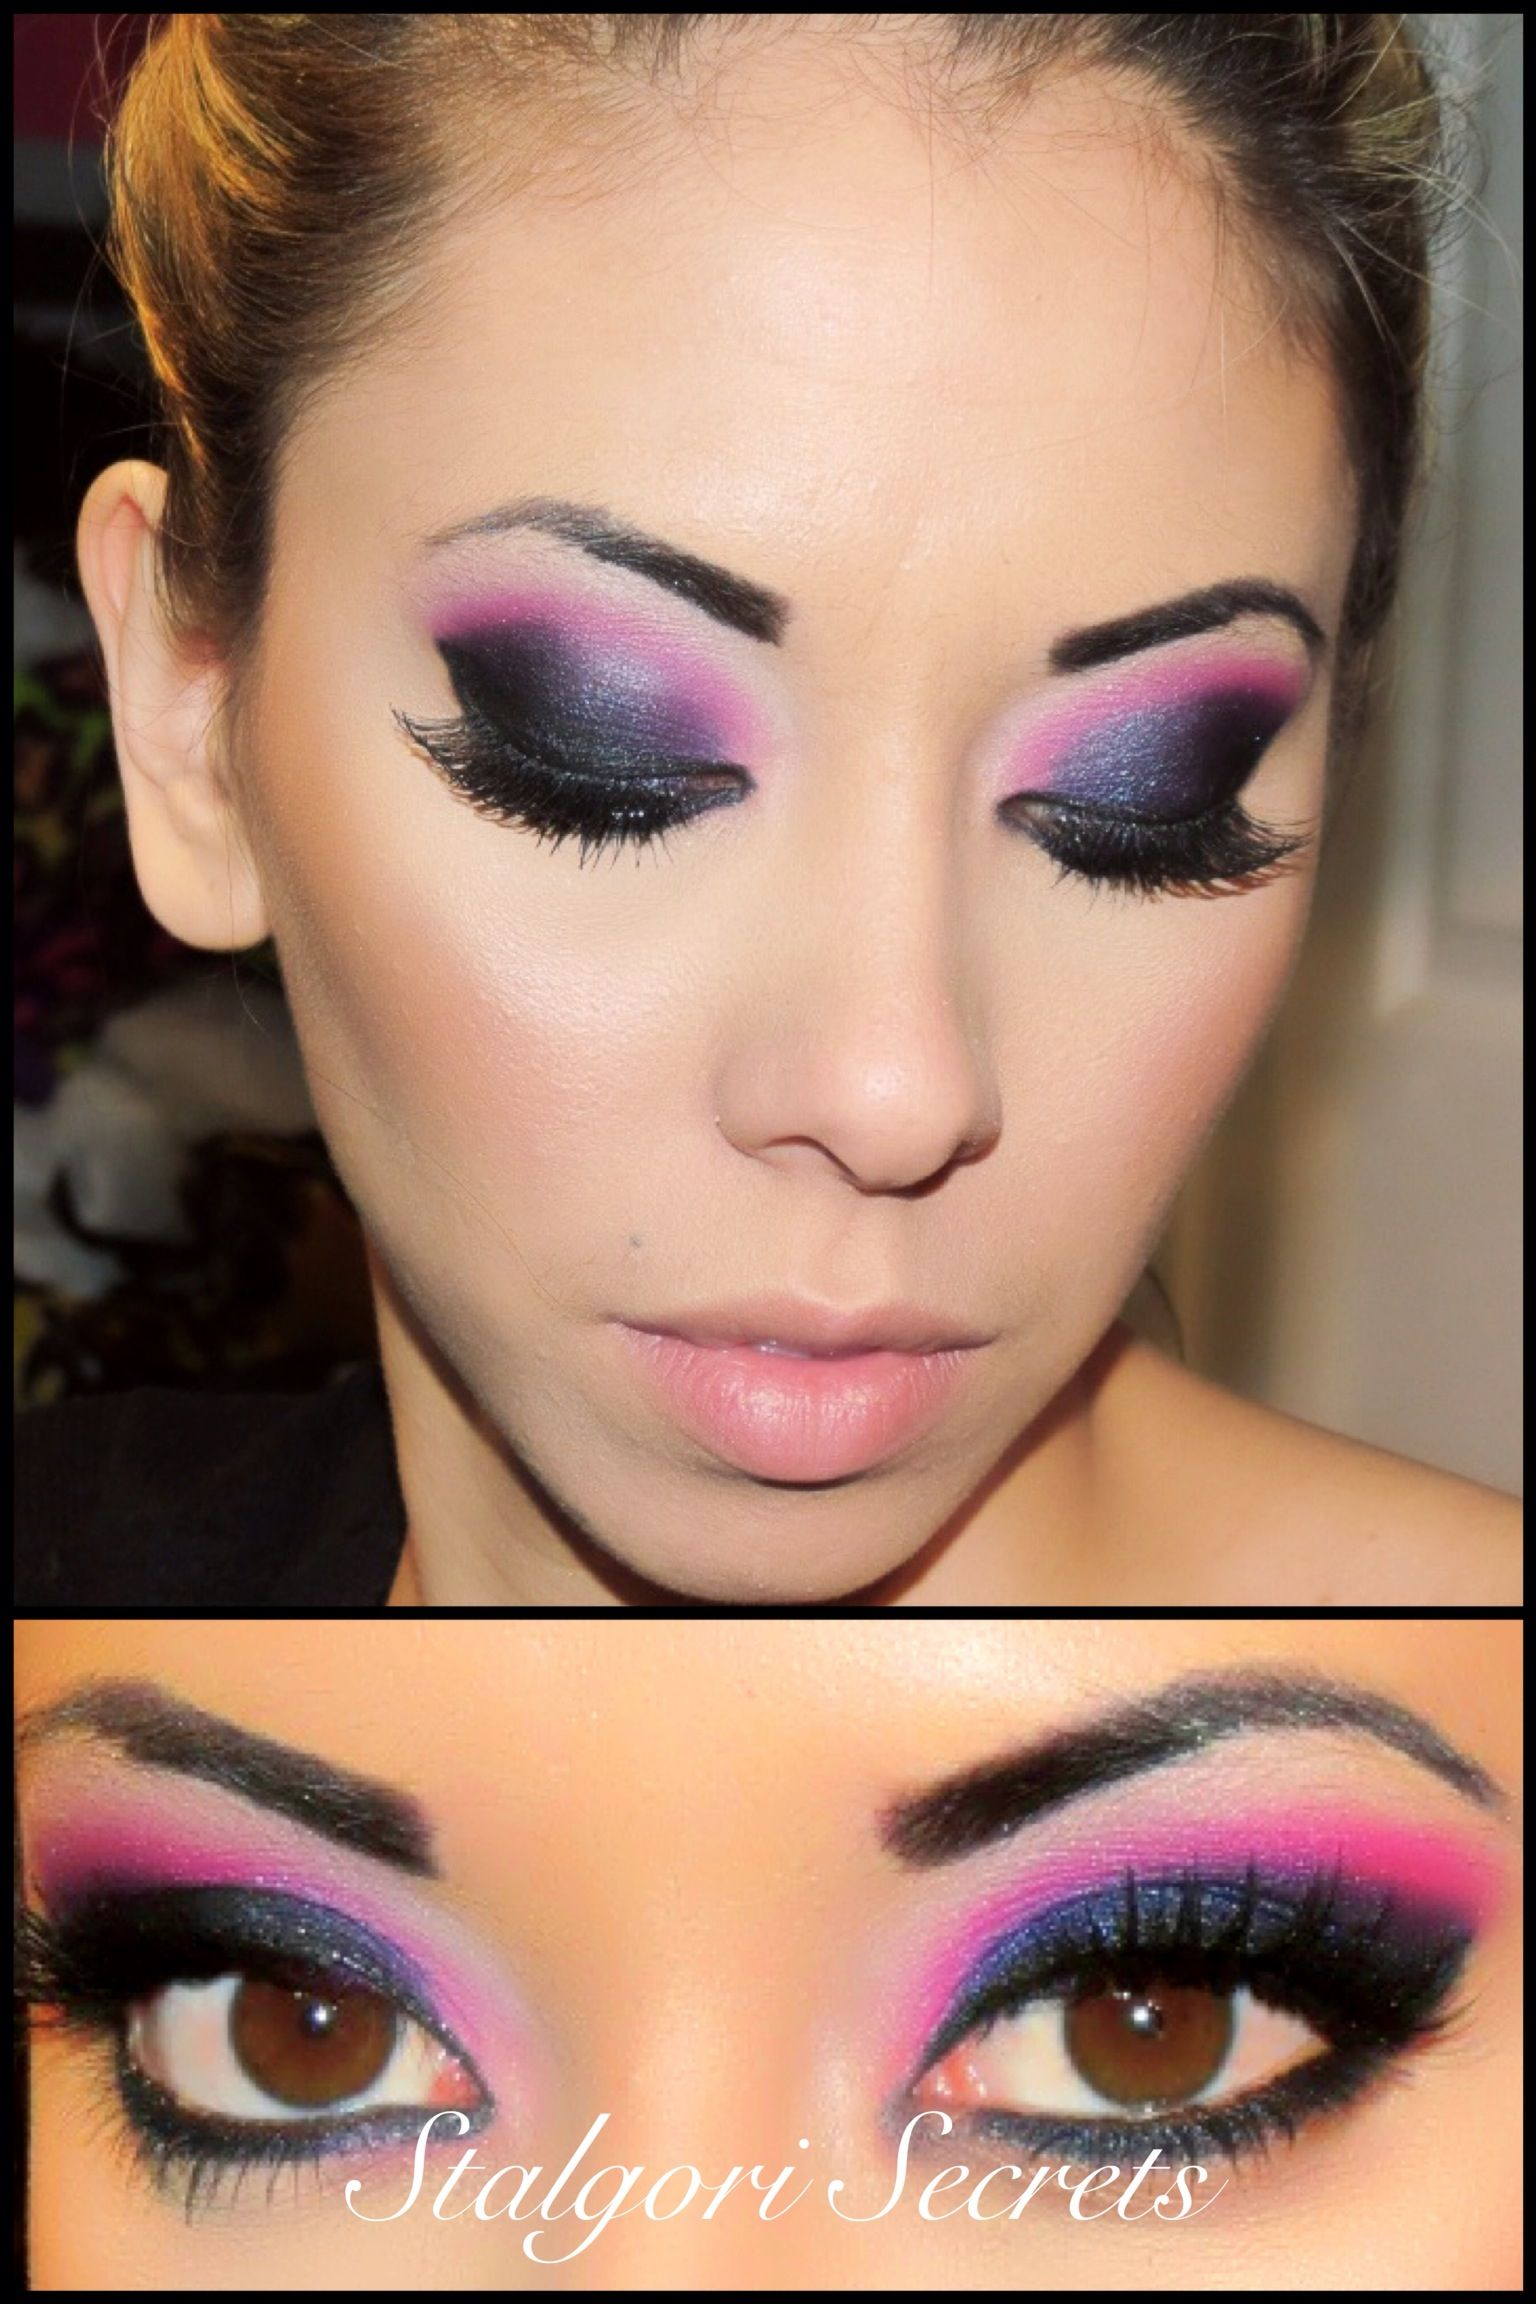 Youtube Makeup Tutorials Popular: Pink Gogo Makeup Youtube Tutorial @kmbmakeup If I'm Ever A